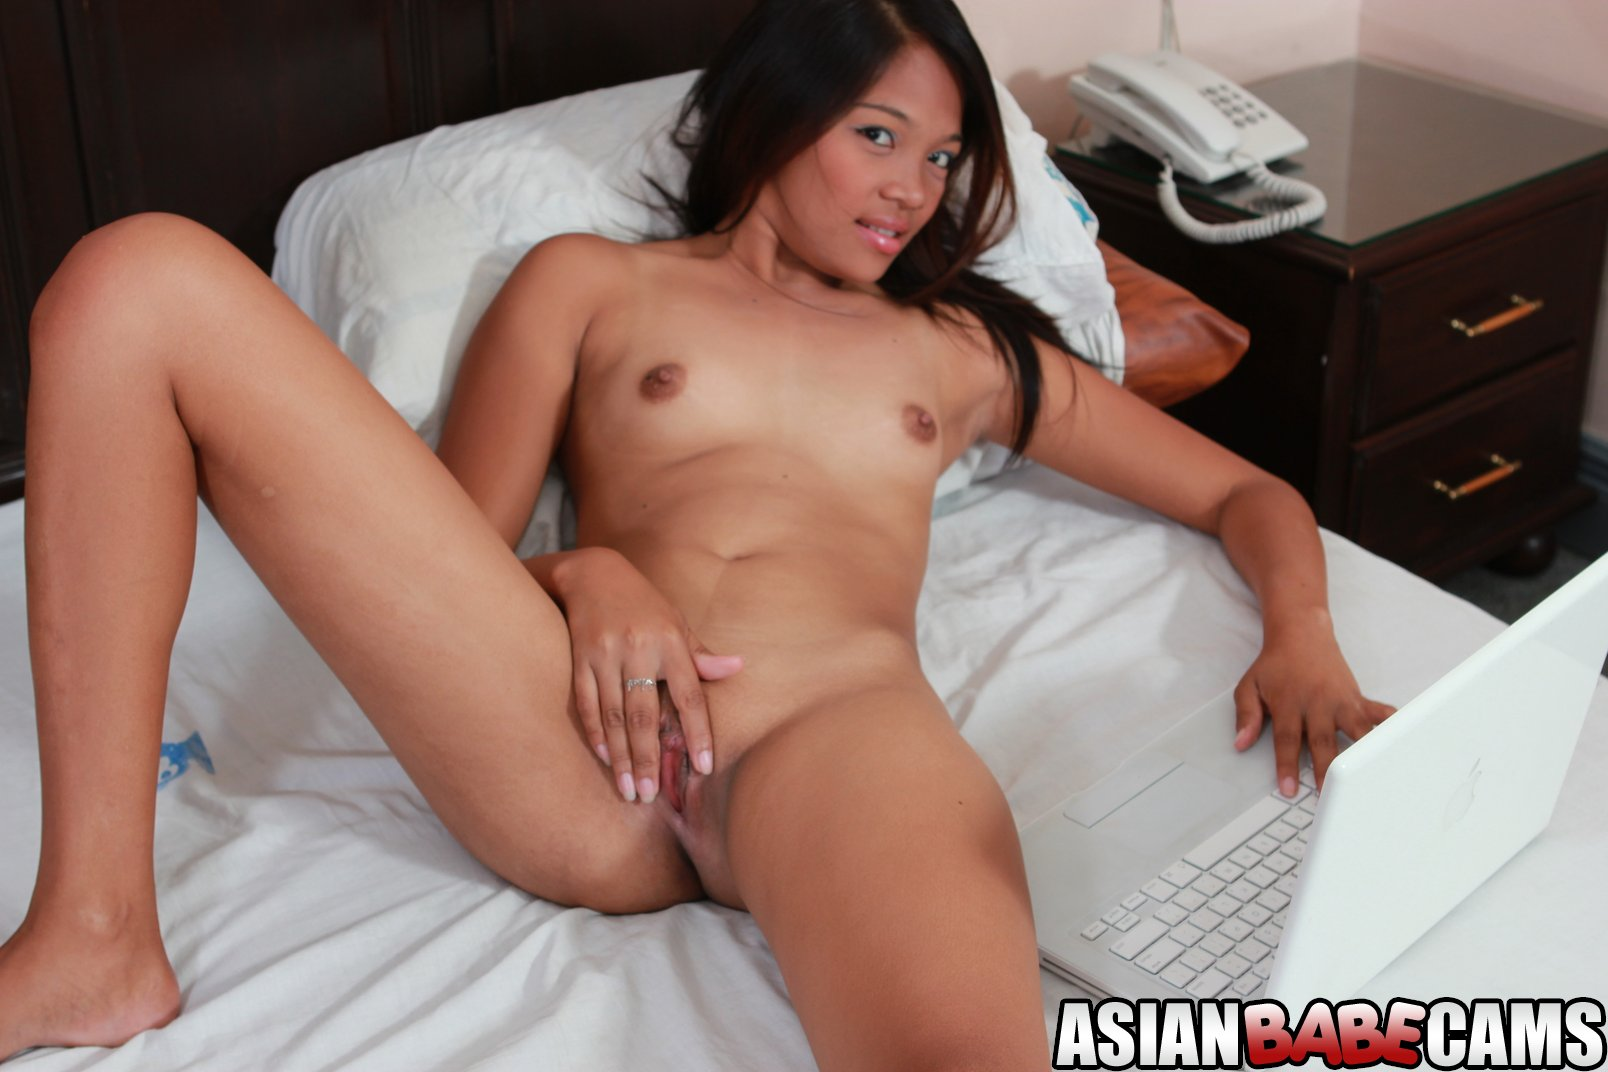 Asian babe chat live